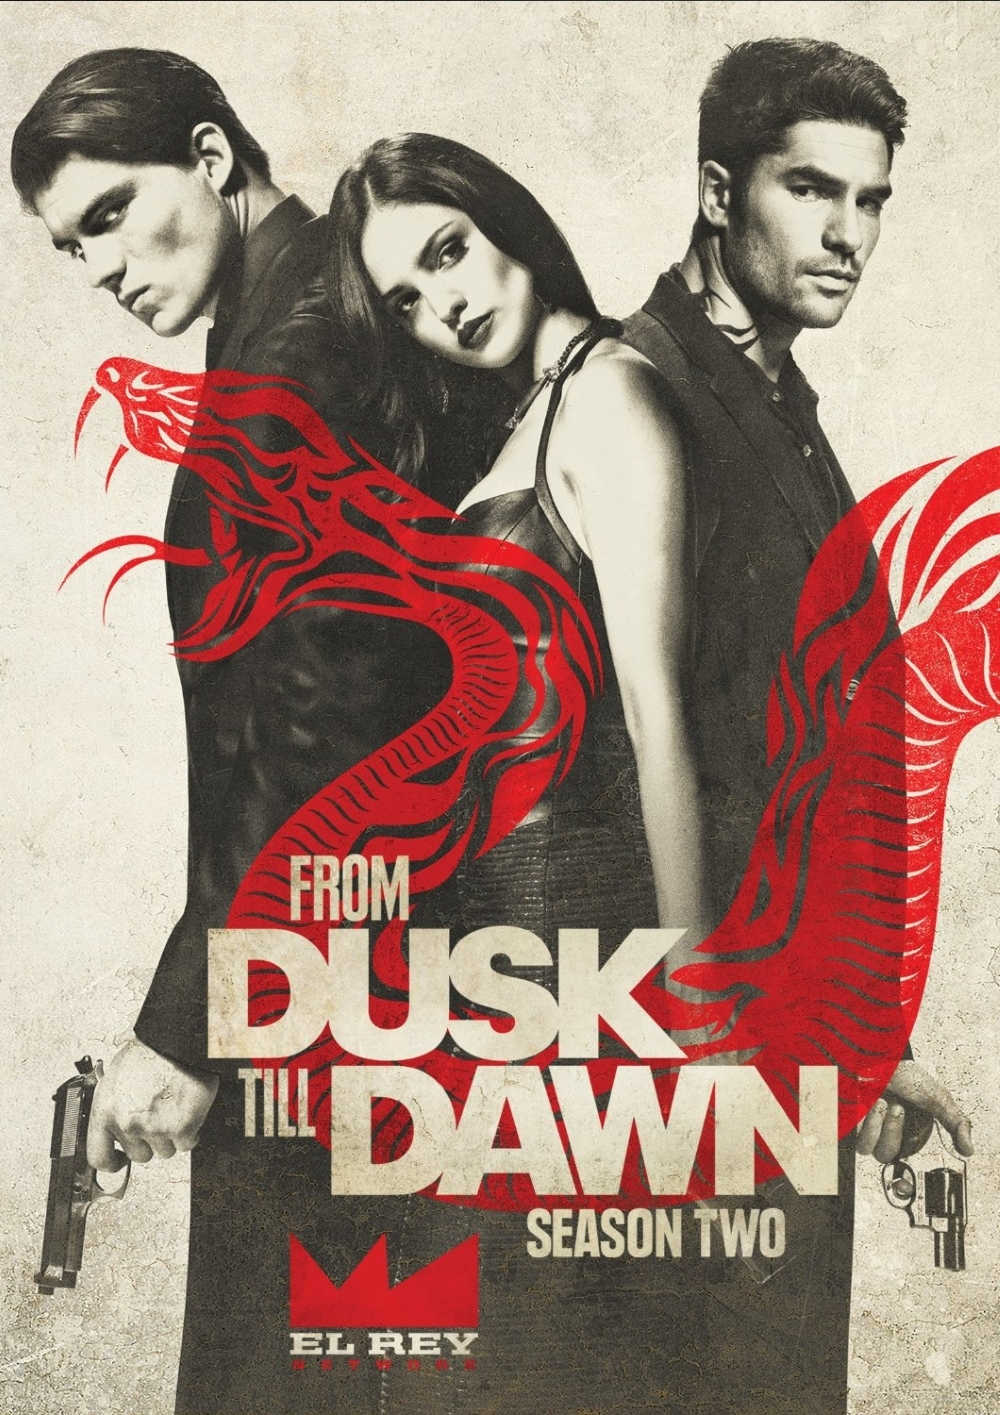 From dusk till dawn second season two 2  dvd 2016 3 disc  dj cotrona  zane holz